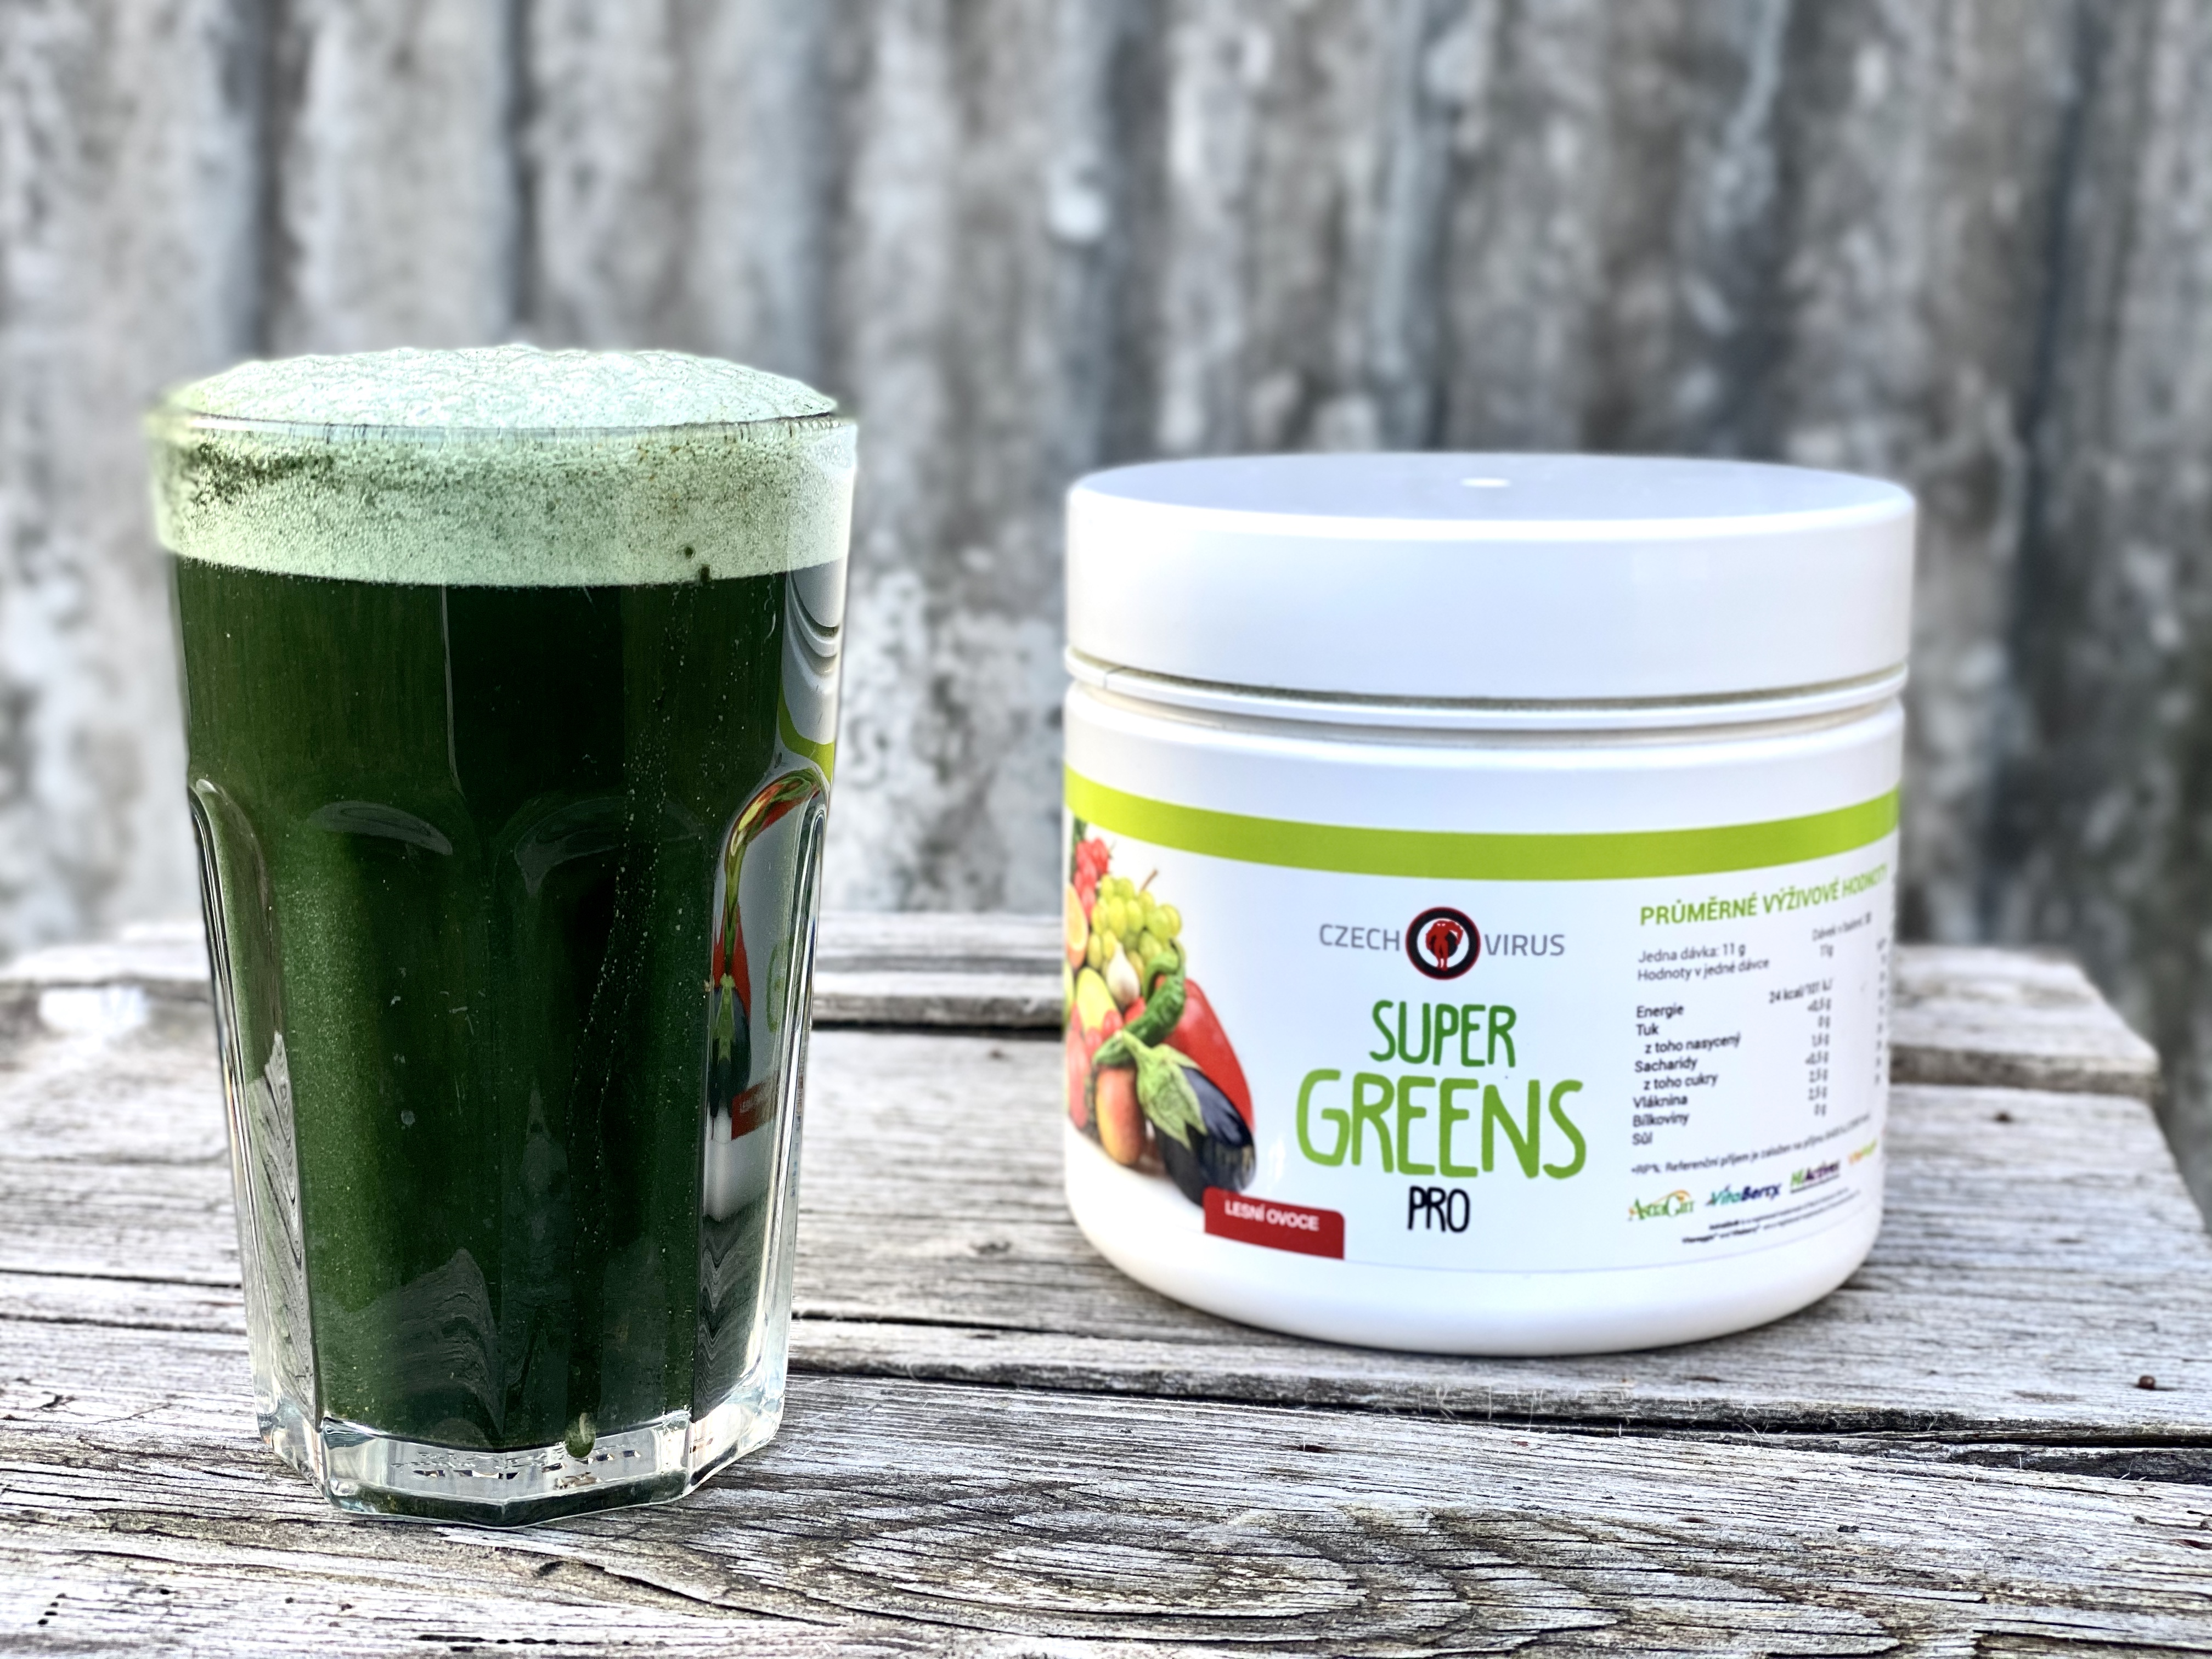 Super Greens MIX